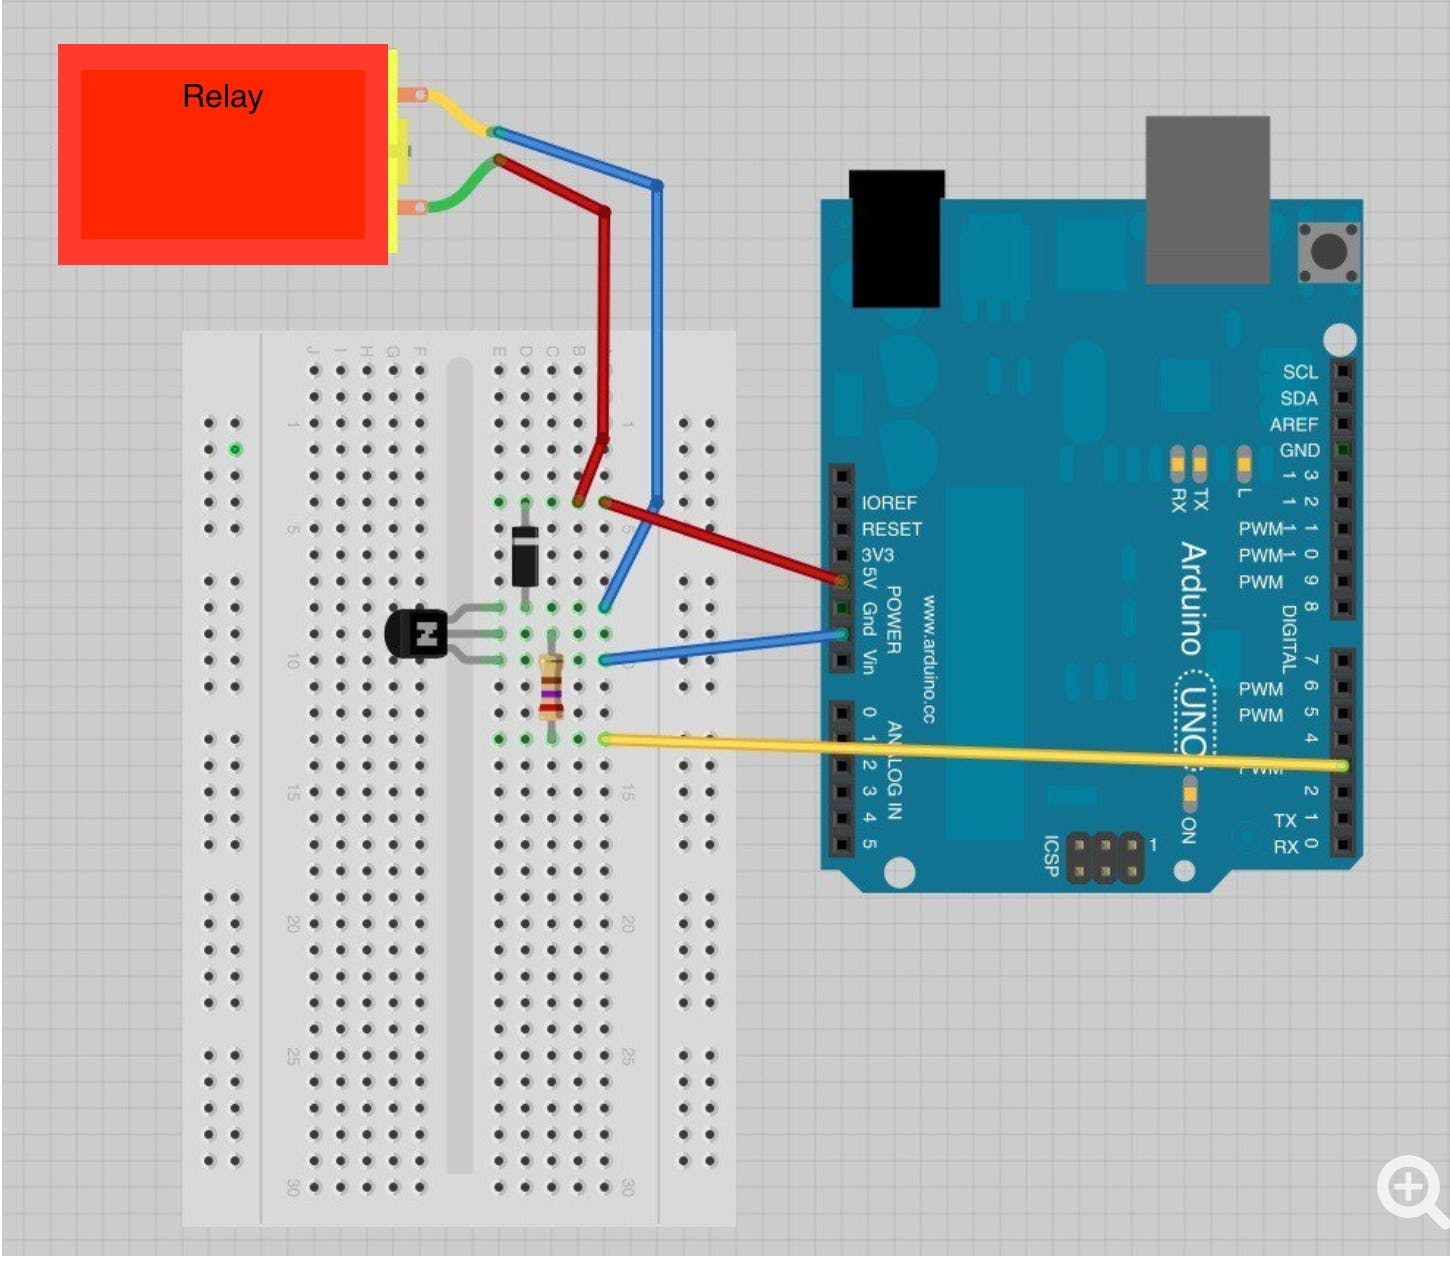 Wiring diagram (same as using a motor with an Arduino)